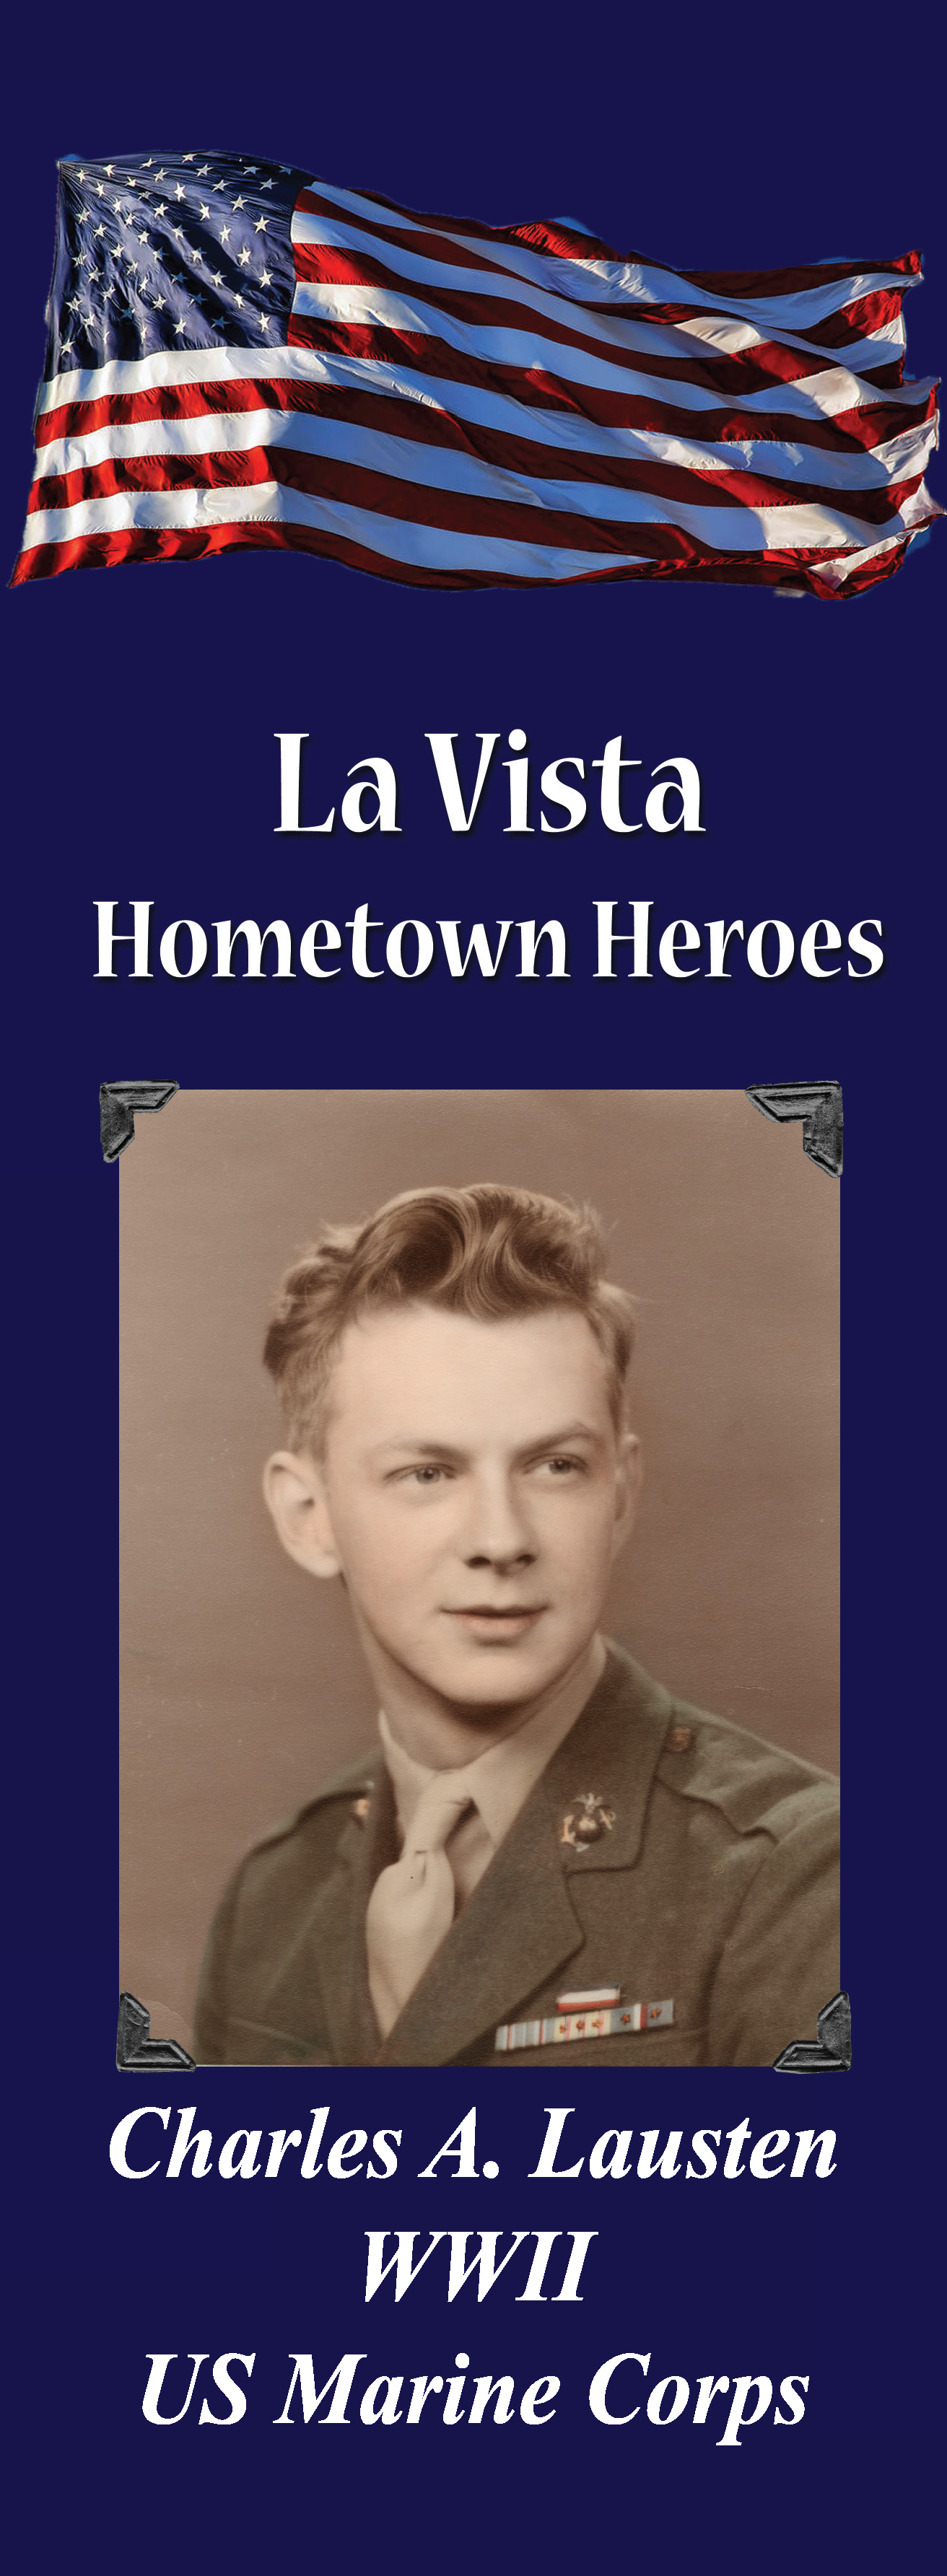 La Vista Hometown Heroes, Charles A. Lausten WWII US Marine Corps